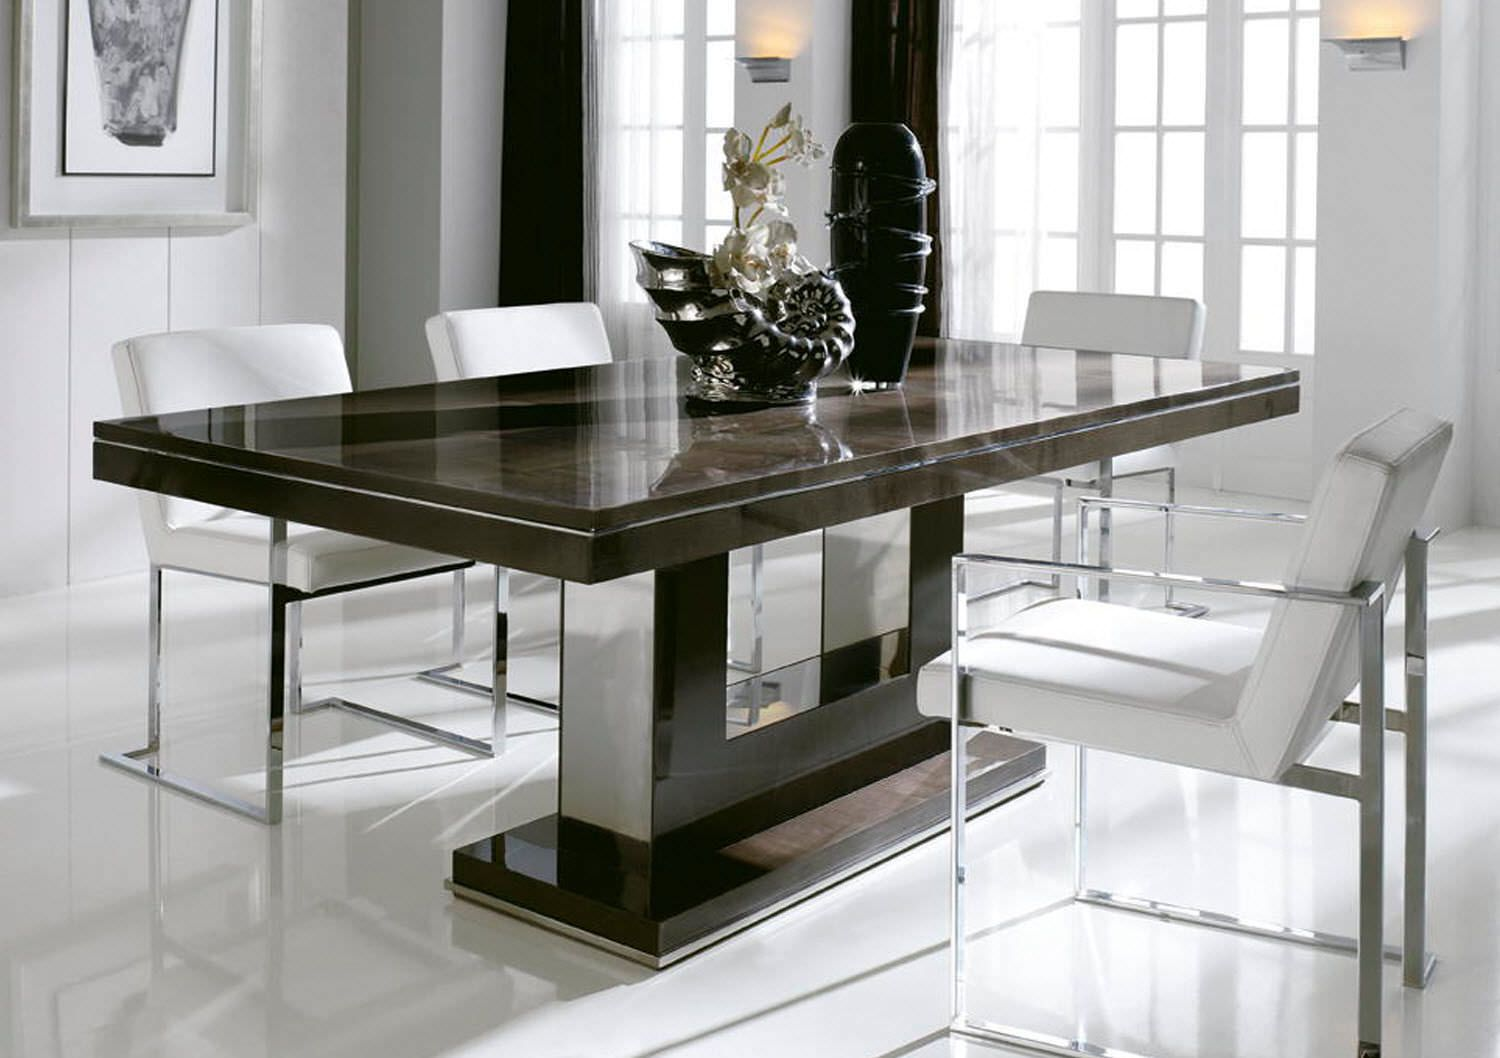 Interesting Modern Dining Table Contemporary kitchen